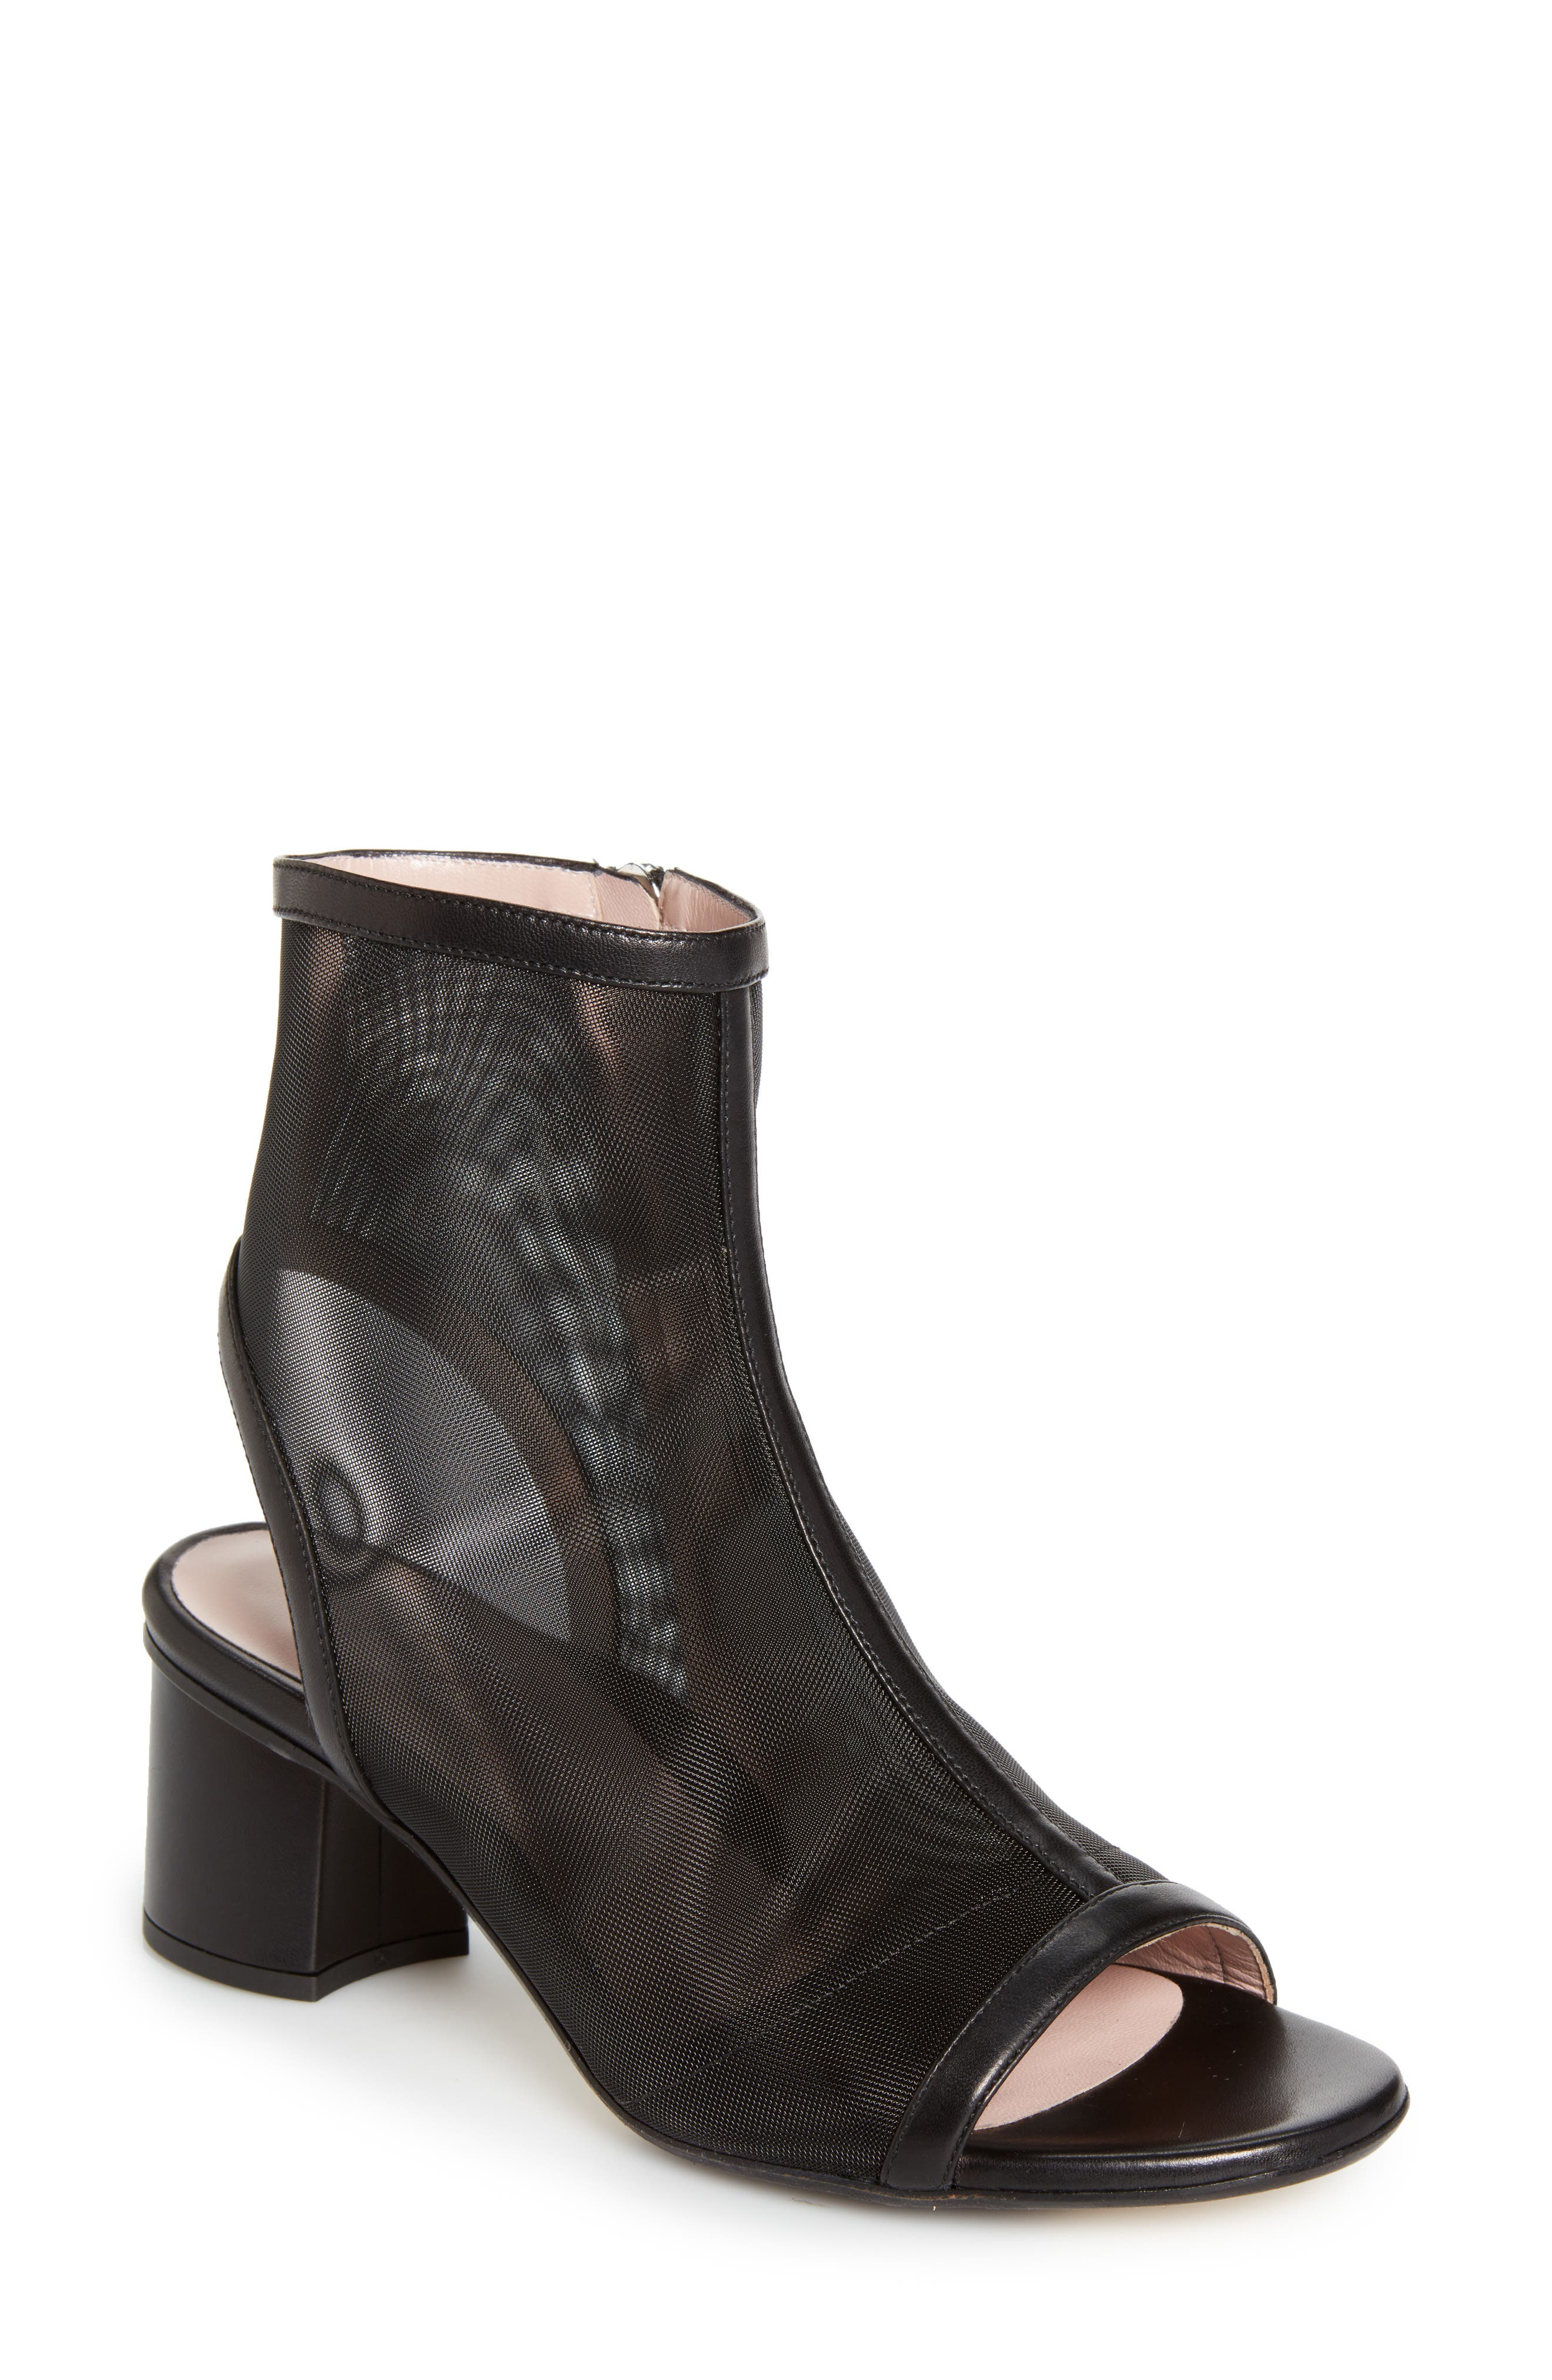 TARYN ROSE COLLECTION,                             Taryn Rose Paige Mesh Peeptoe Bootie,                             Main thumbnail 1, color,                             004